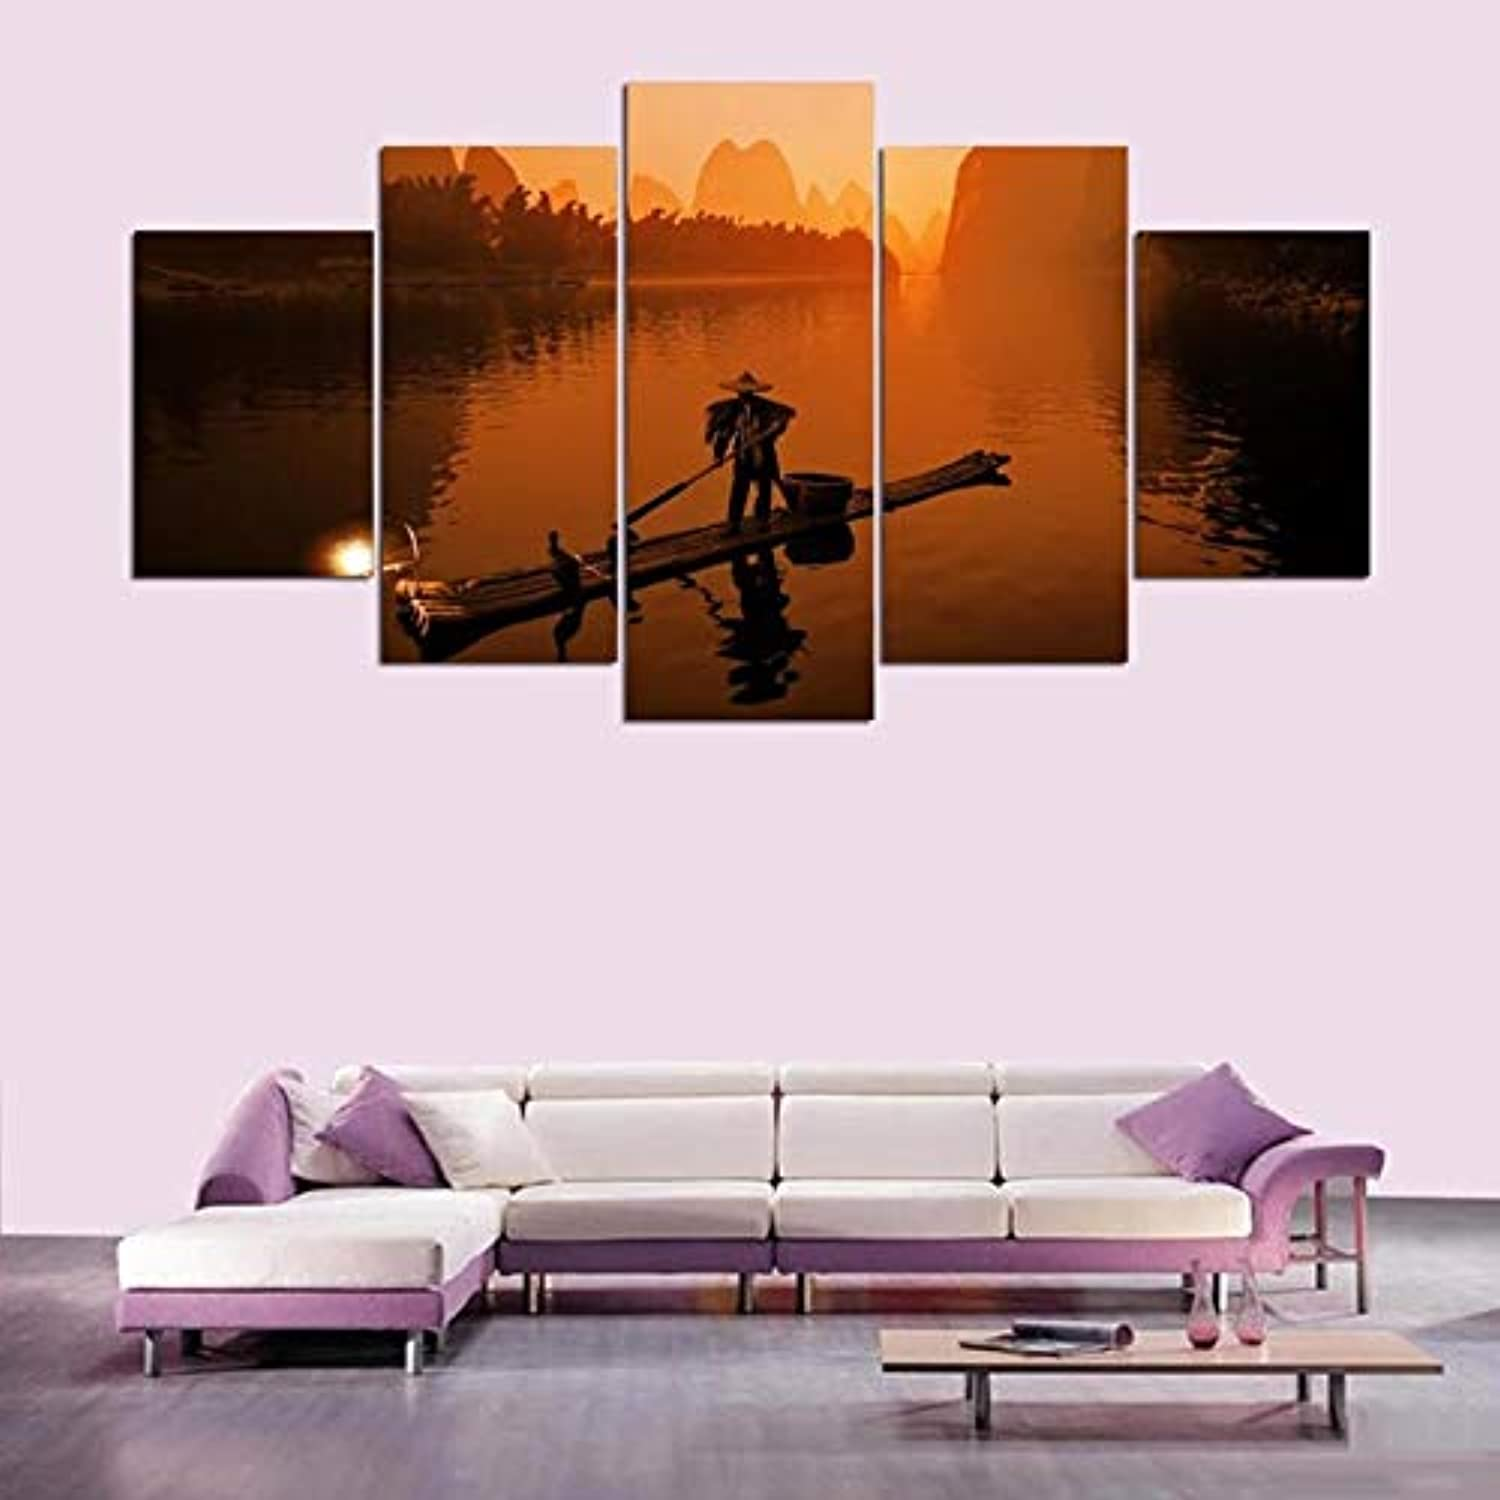 Canvas Painting Modular Wall Art Picture Framed 5 Pieces Sunset Sail in The River Poster for Living Room Home Decor